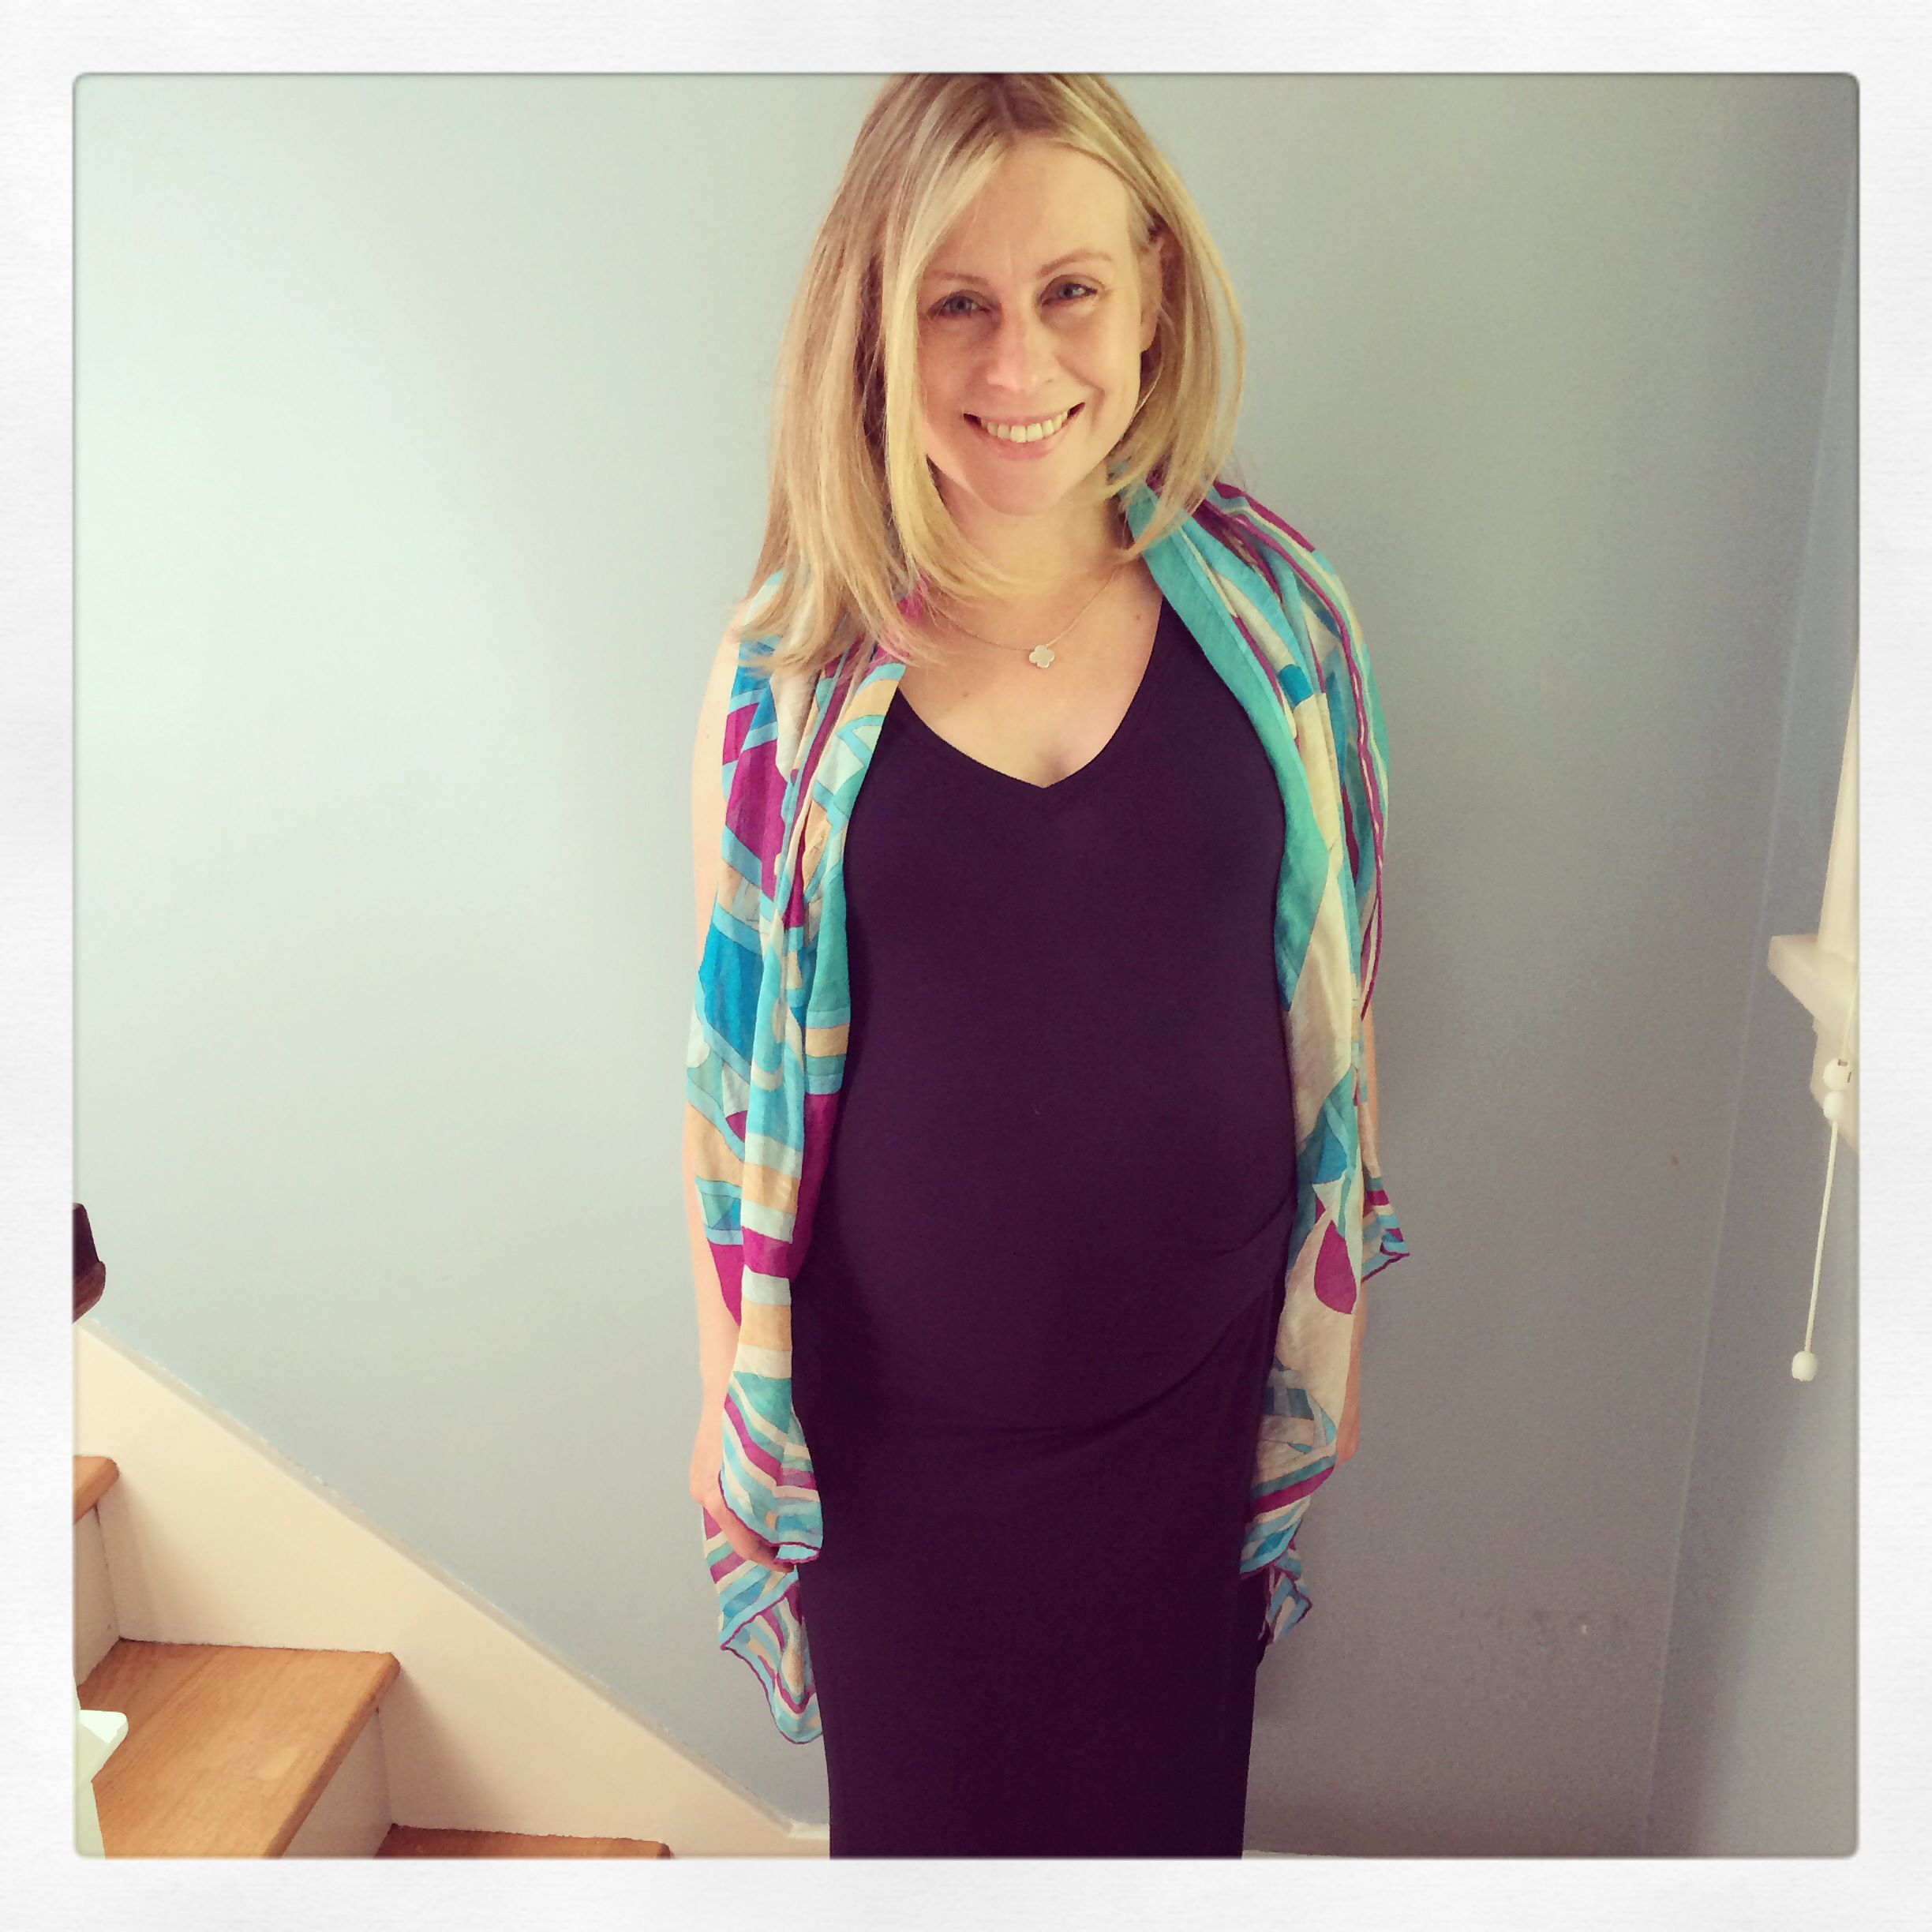 34 weeks in gap maternity dress and emilio pucci scarf ninas 34 weeks in gap maternity dress and emilio pucci scarf ombrellifo Gallery